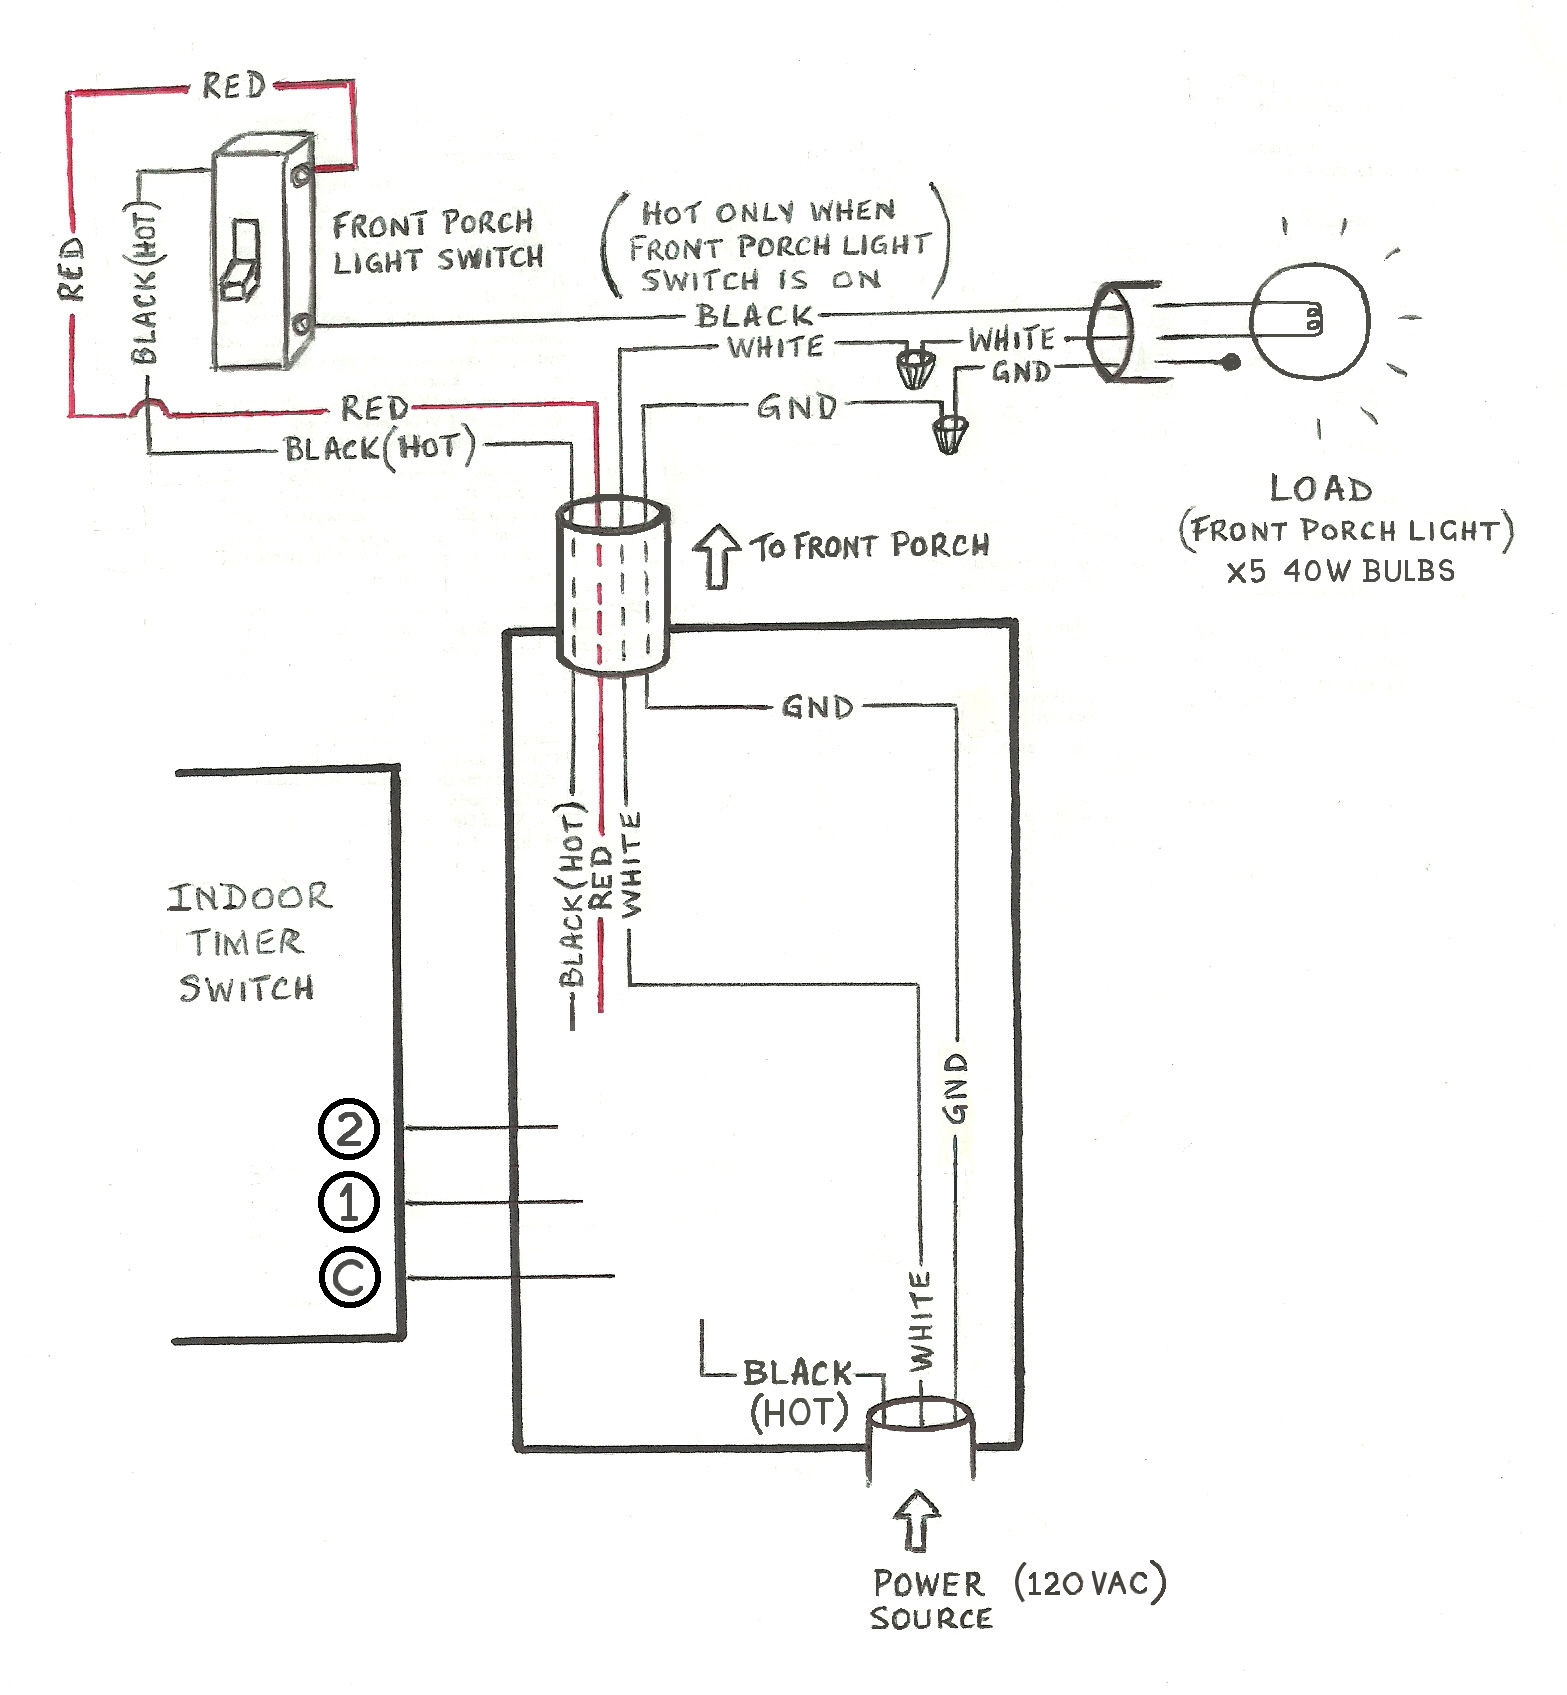 hight resolution of honeywell actuator wiring diagram honeywell wiring diagram app best porch light wiring diagram collection 7a